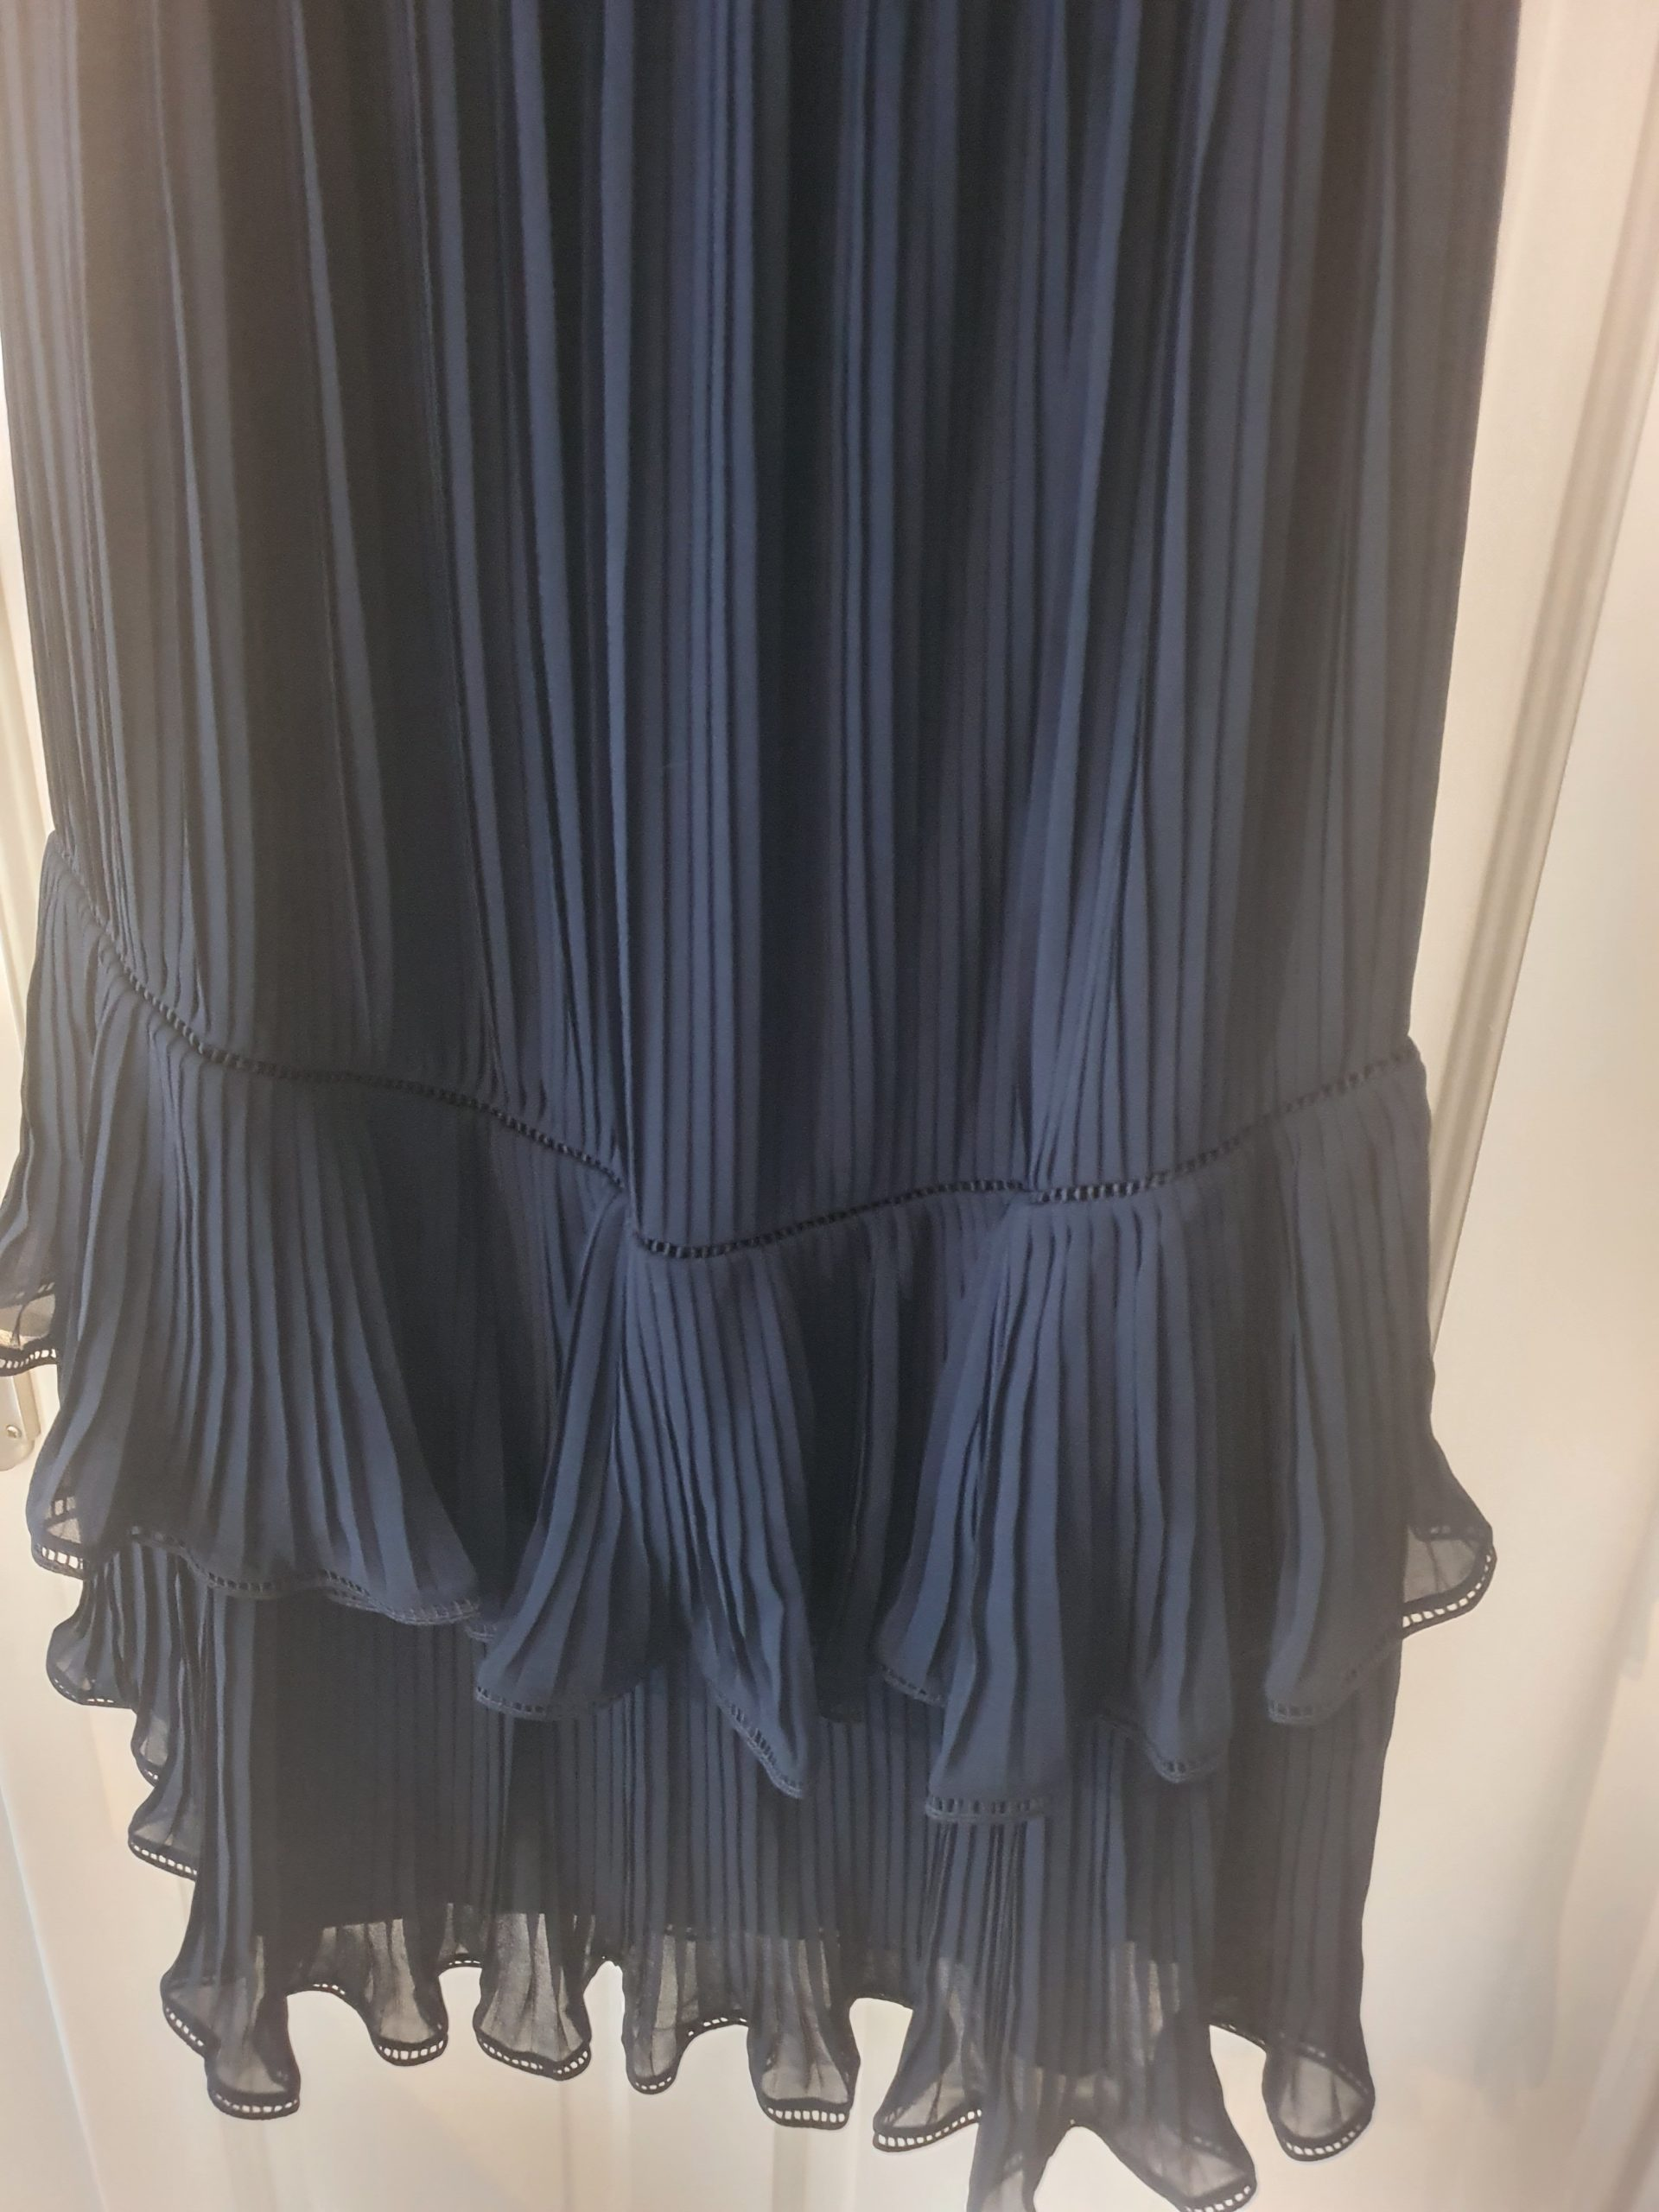 whistles pleated navy dress